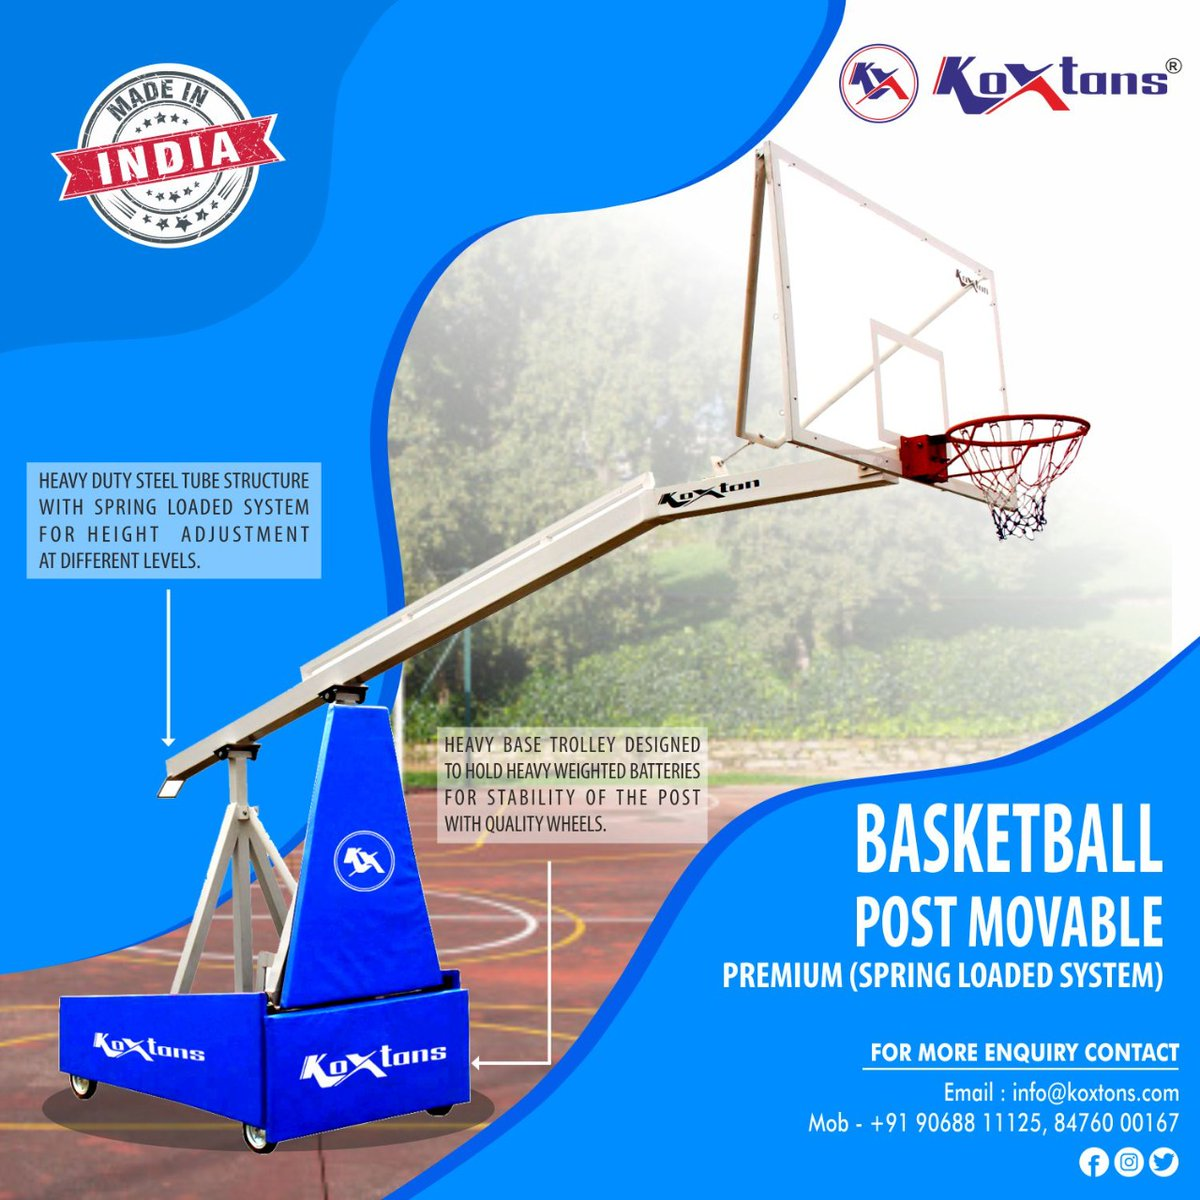 Durability is what you're looking for in a Movable Basketball Post,then you've stumbled upon the right product. KOXTONS Basketball Post Movable is enormously durable and gives you more than expectations. Visit https://t.co/lMNXHo7Mc3 or DM on 9068811125 #basketball #outdoorsports https://t.co/D8m2AEkX2v